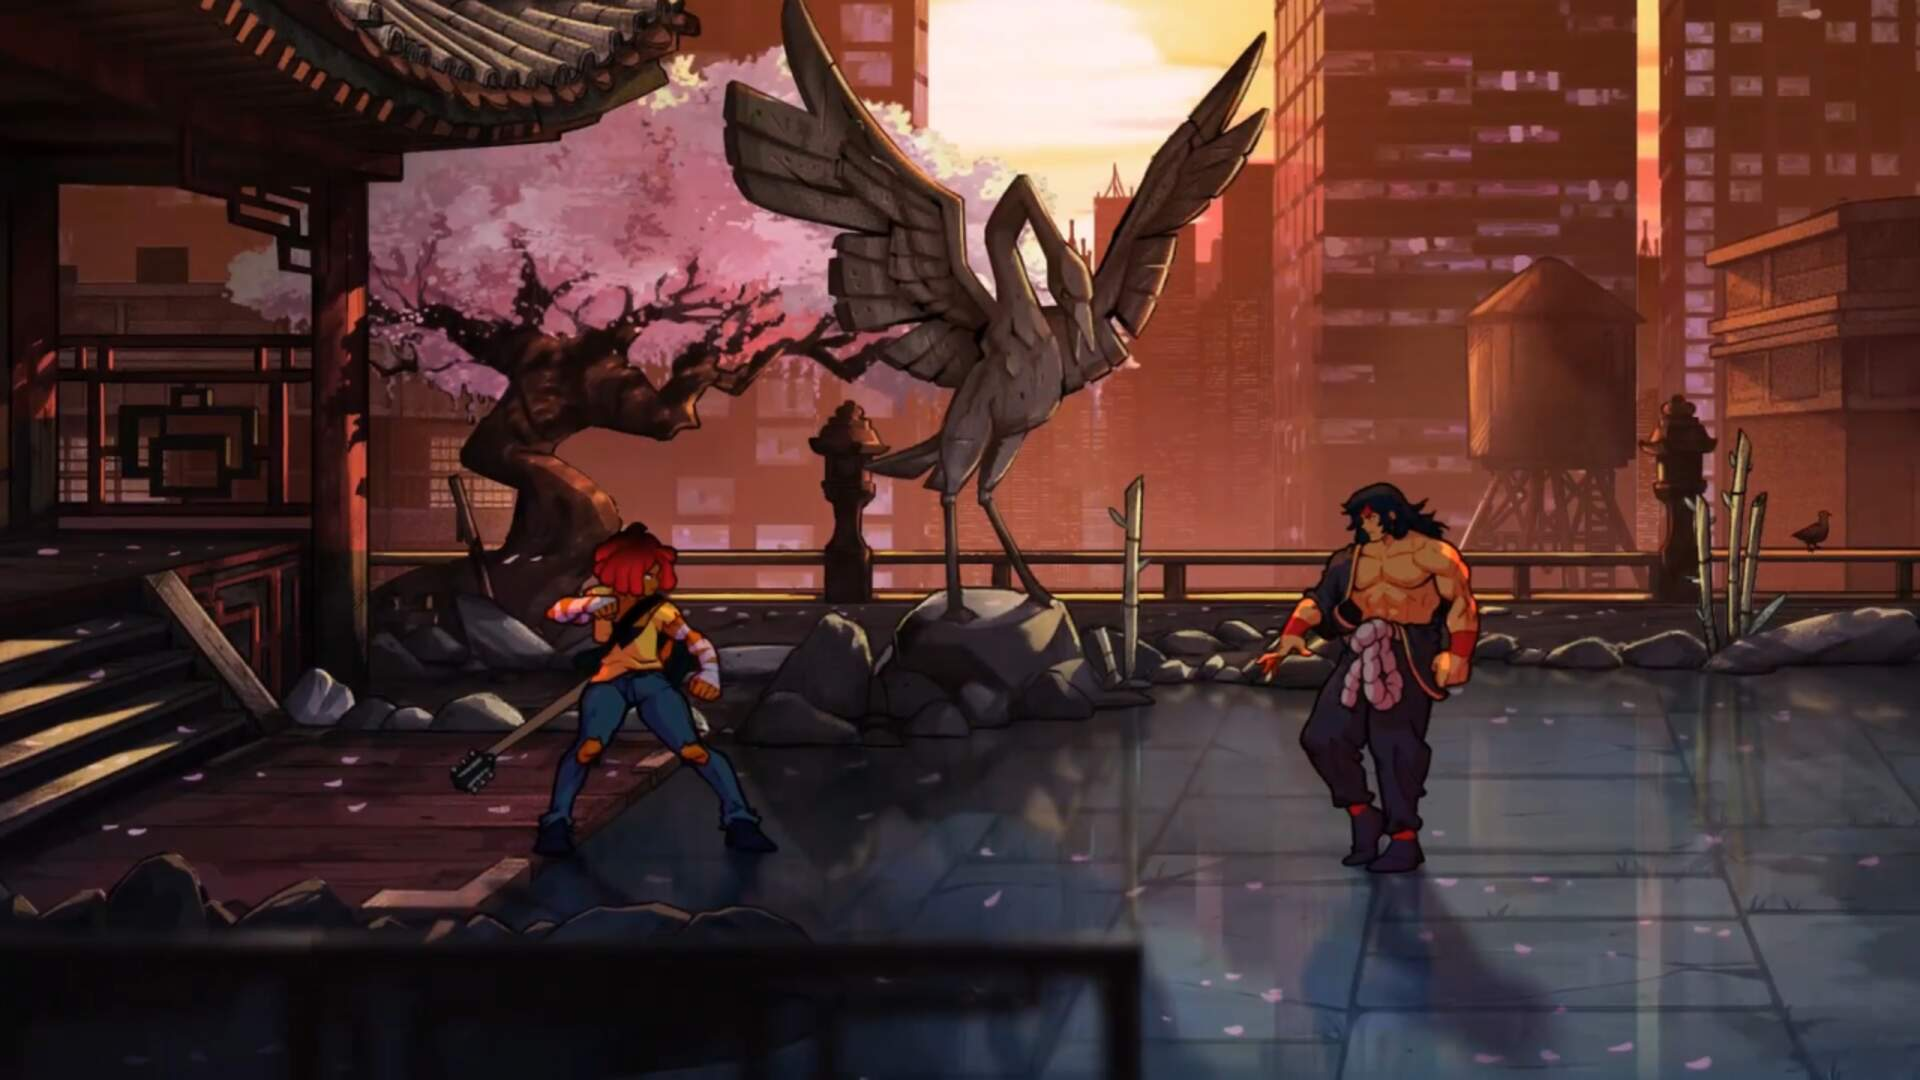 Streets of Rage 4 Confirms It's Coming to PC and Consoles With New Character Trailer